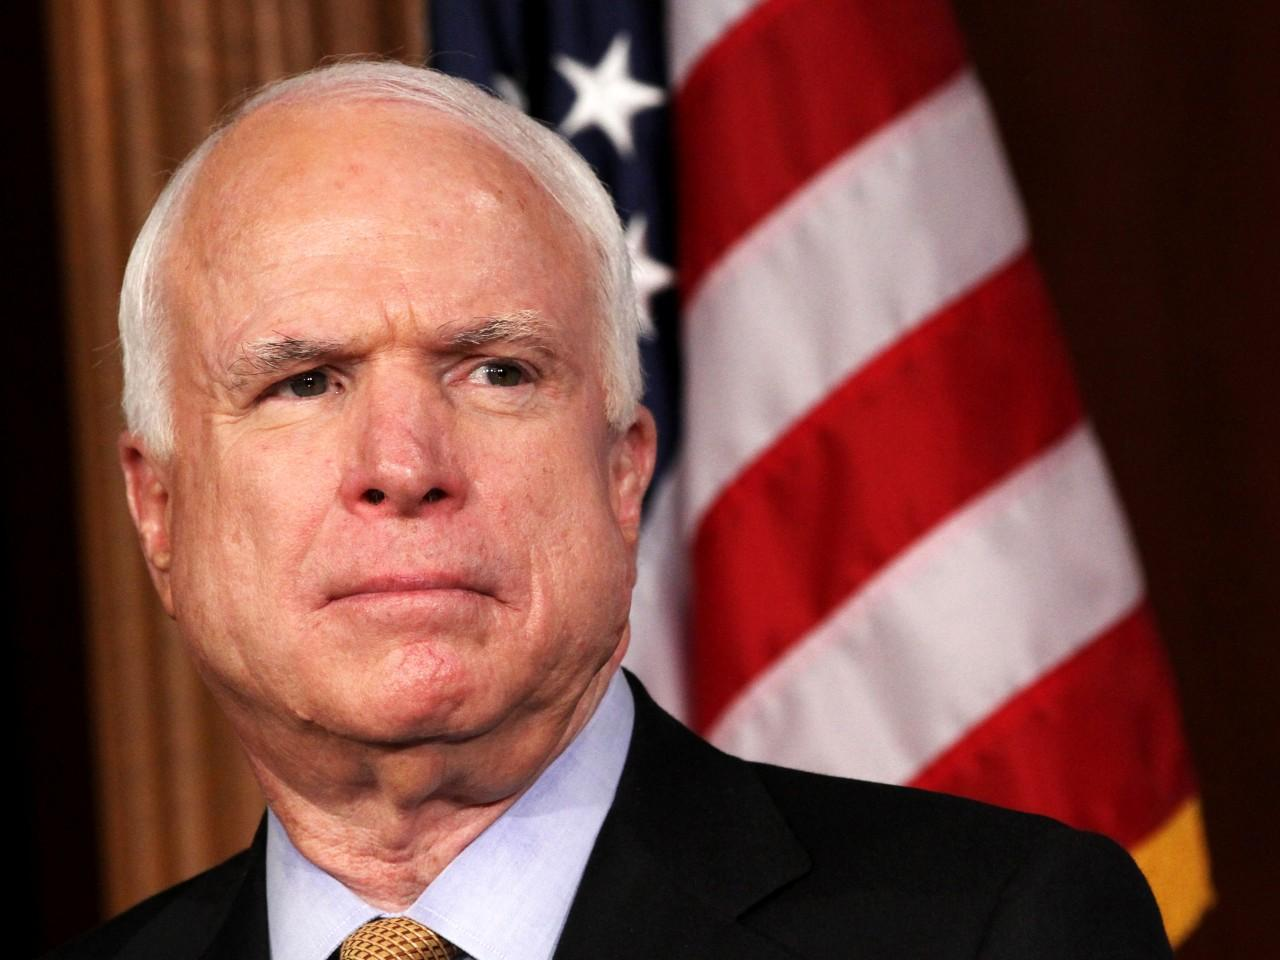 Statement By  Senator Mccain Expressing Concern About Democracy And Rule Of Law In Hungary